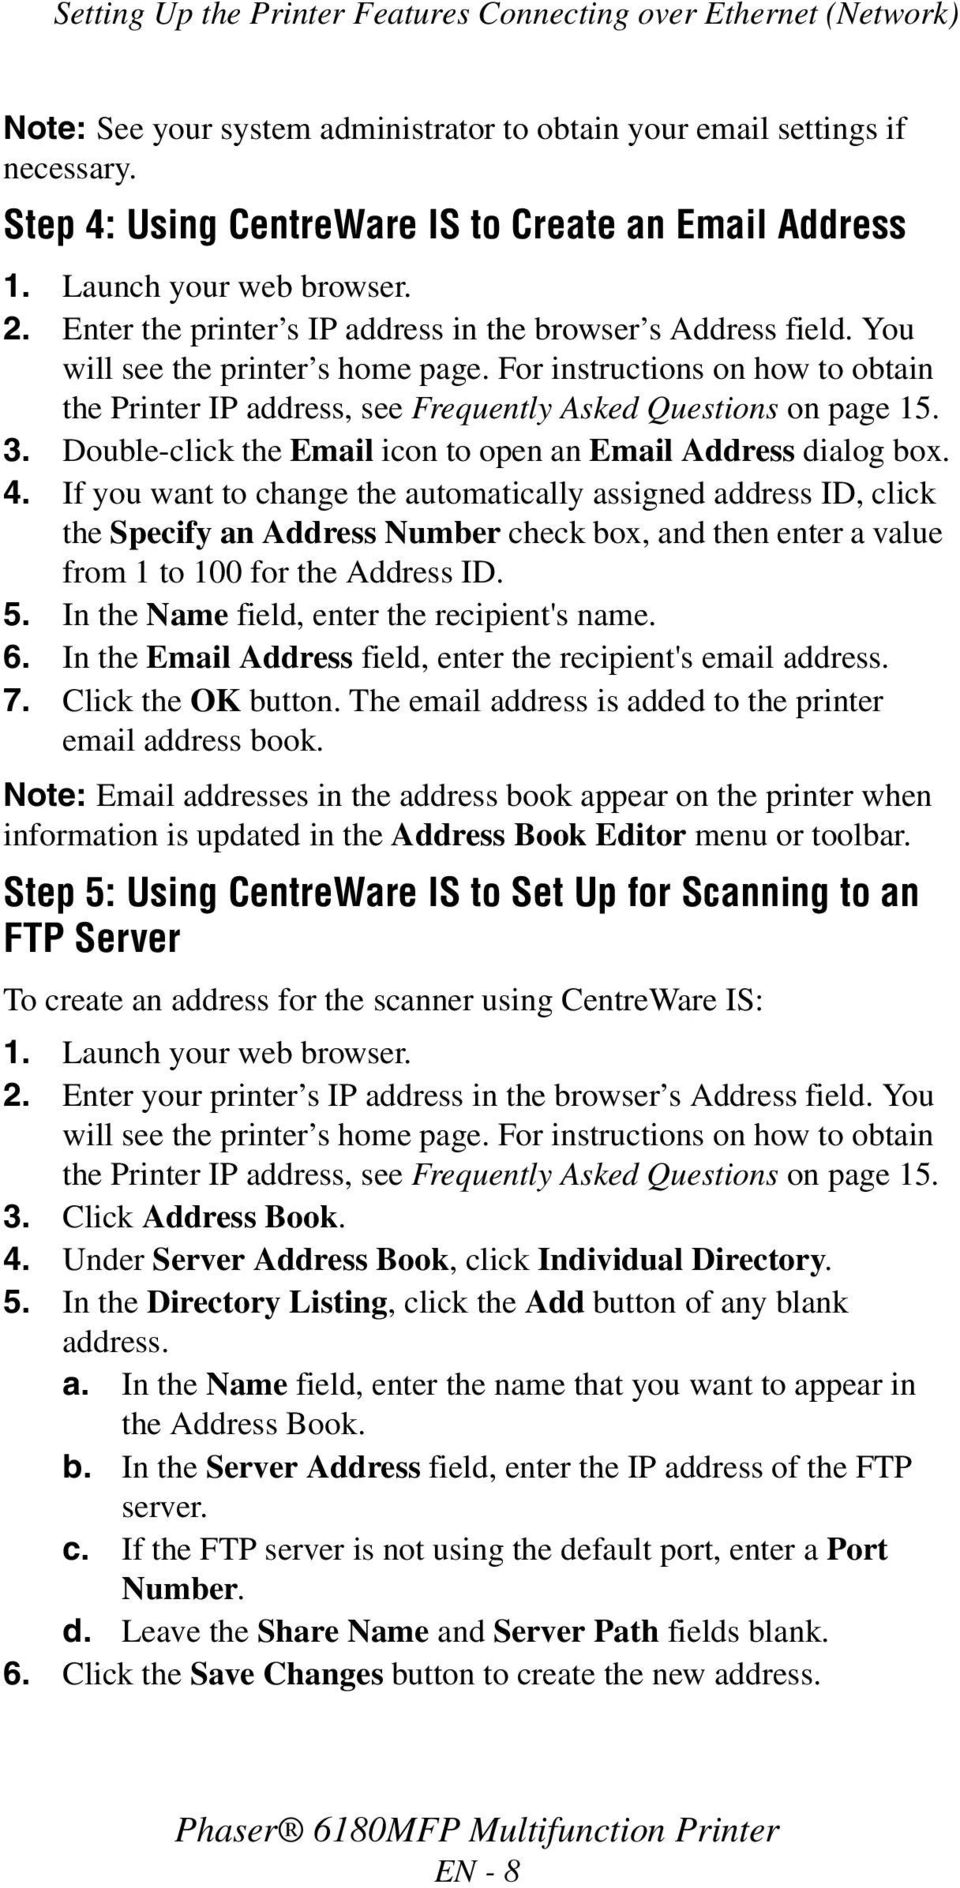 For instructions on how to obtain the Printer IP address, see Frequently Asked Questions on page 15. 3. Double-click the Email icon to open an Email Address dialog box. 4.